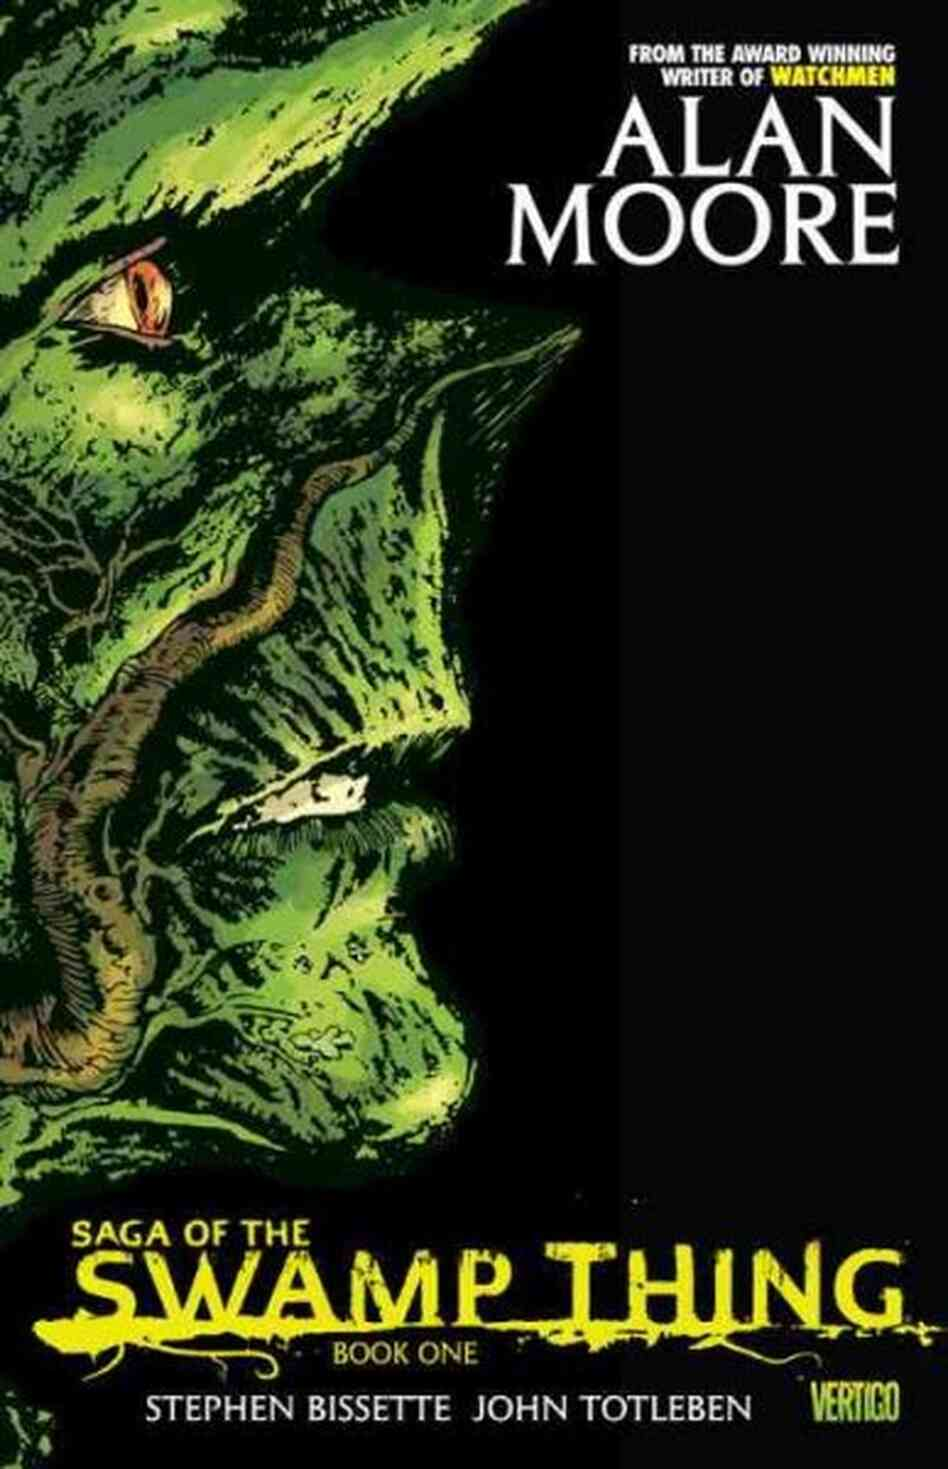 Saga of Swamp Thing 1